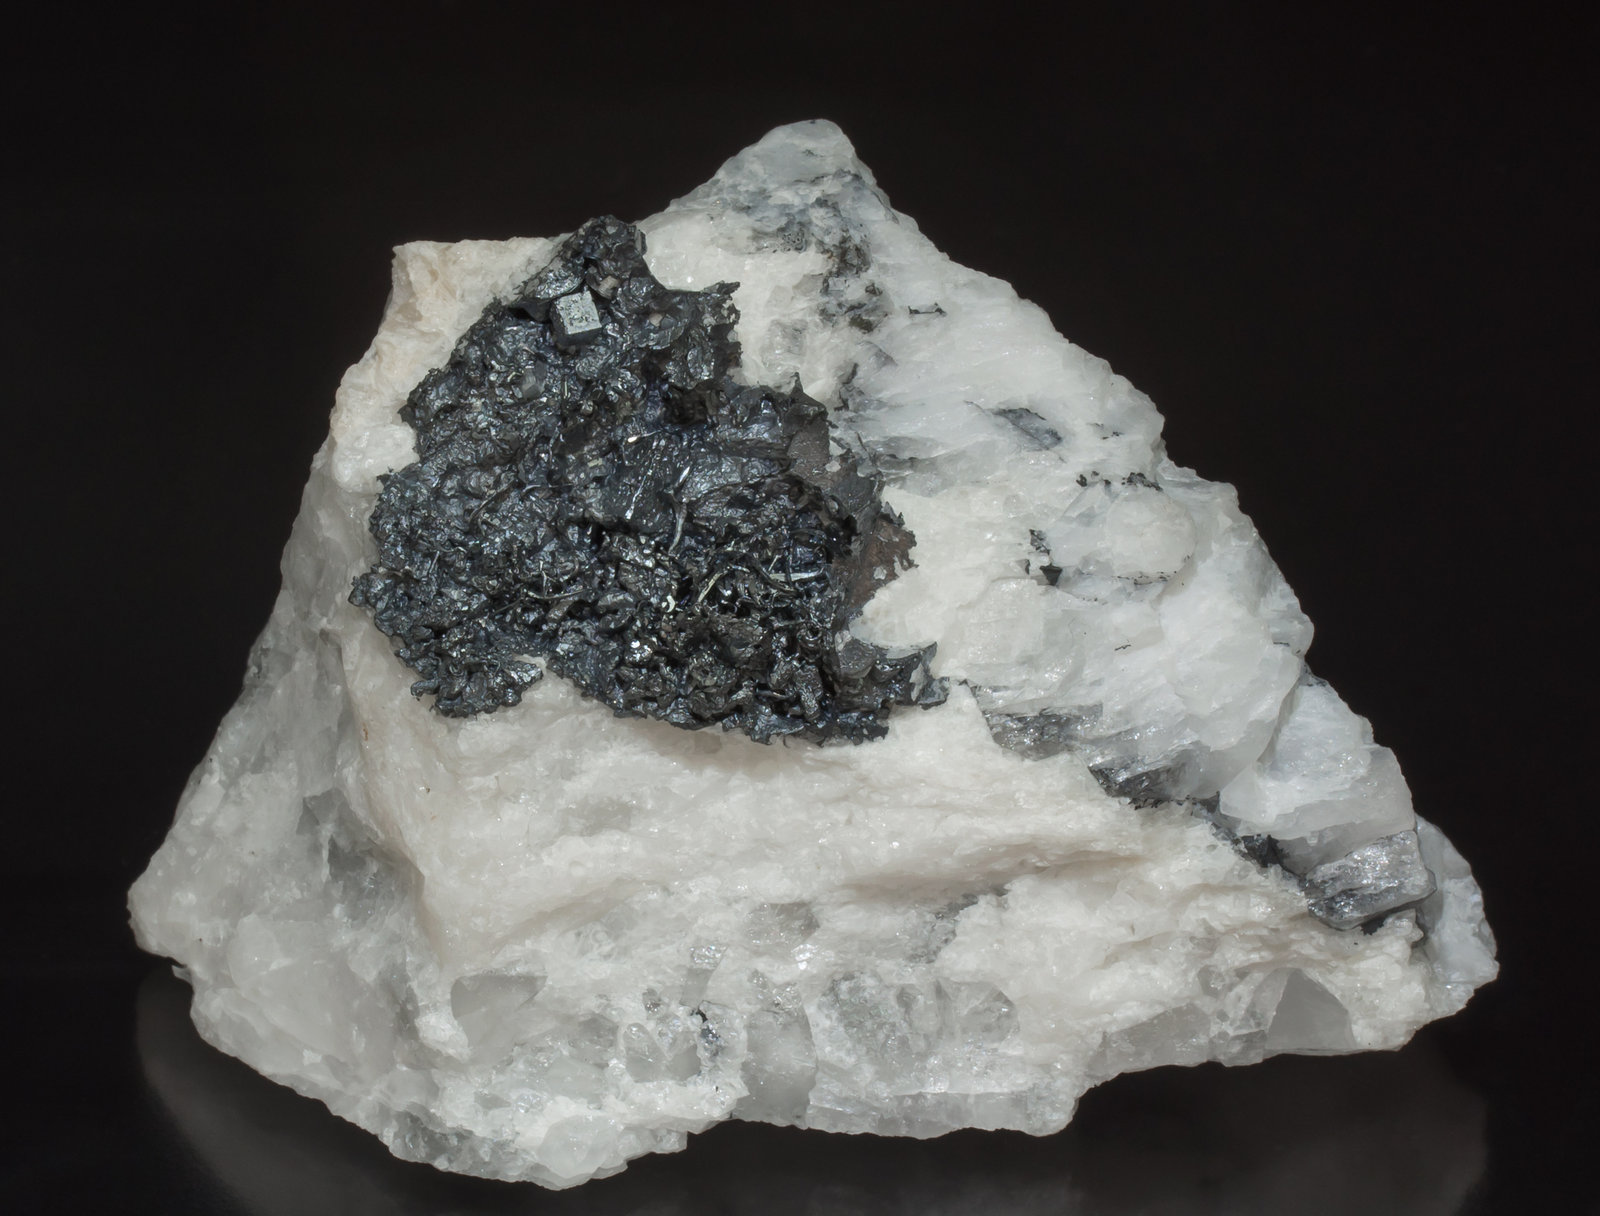 specimens/s_imagesZ7/Acanthite-TV69Z7f.jpg